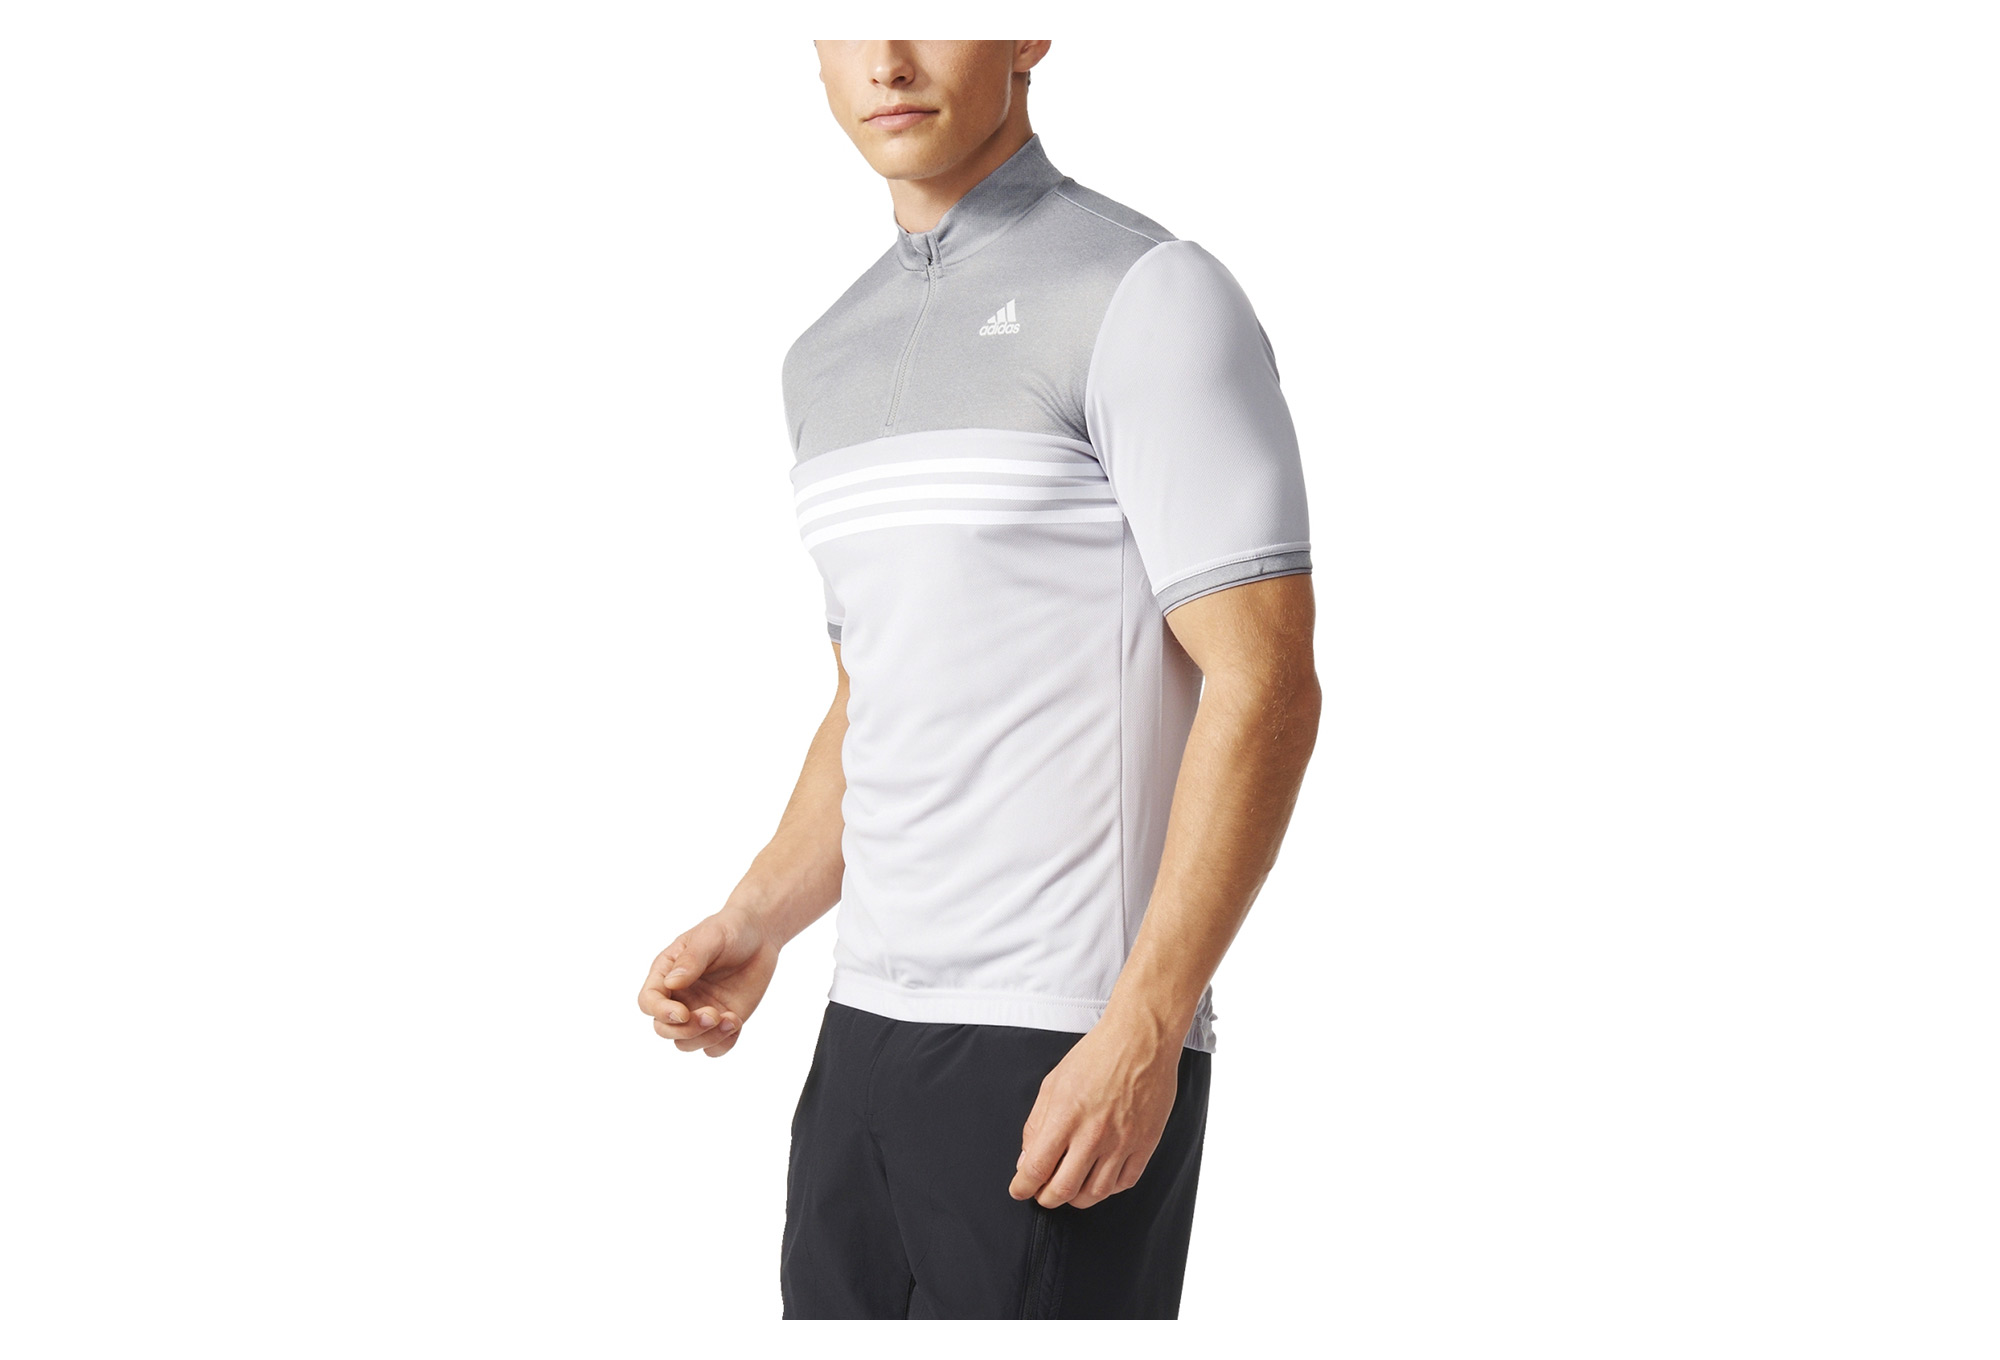 ADIDAS RESPONSE PLURES Short Sleeves Jersey Grey White  1a7283733